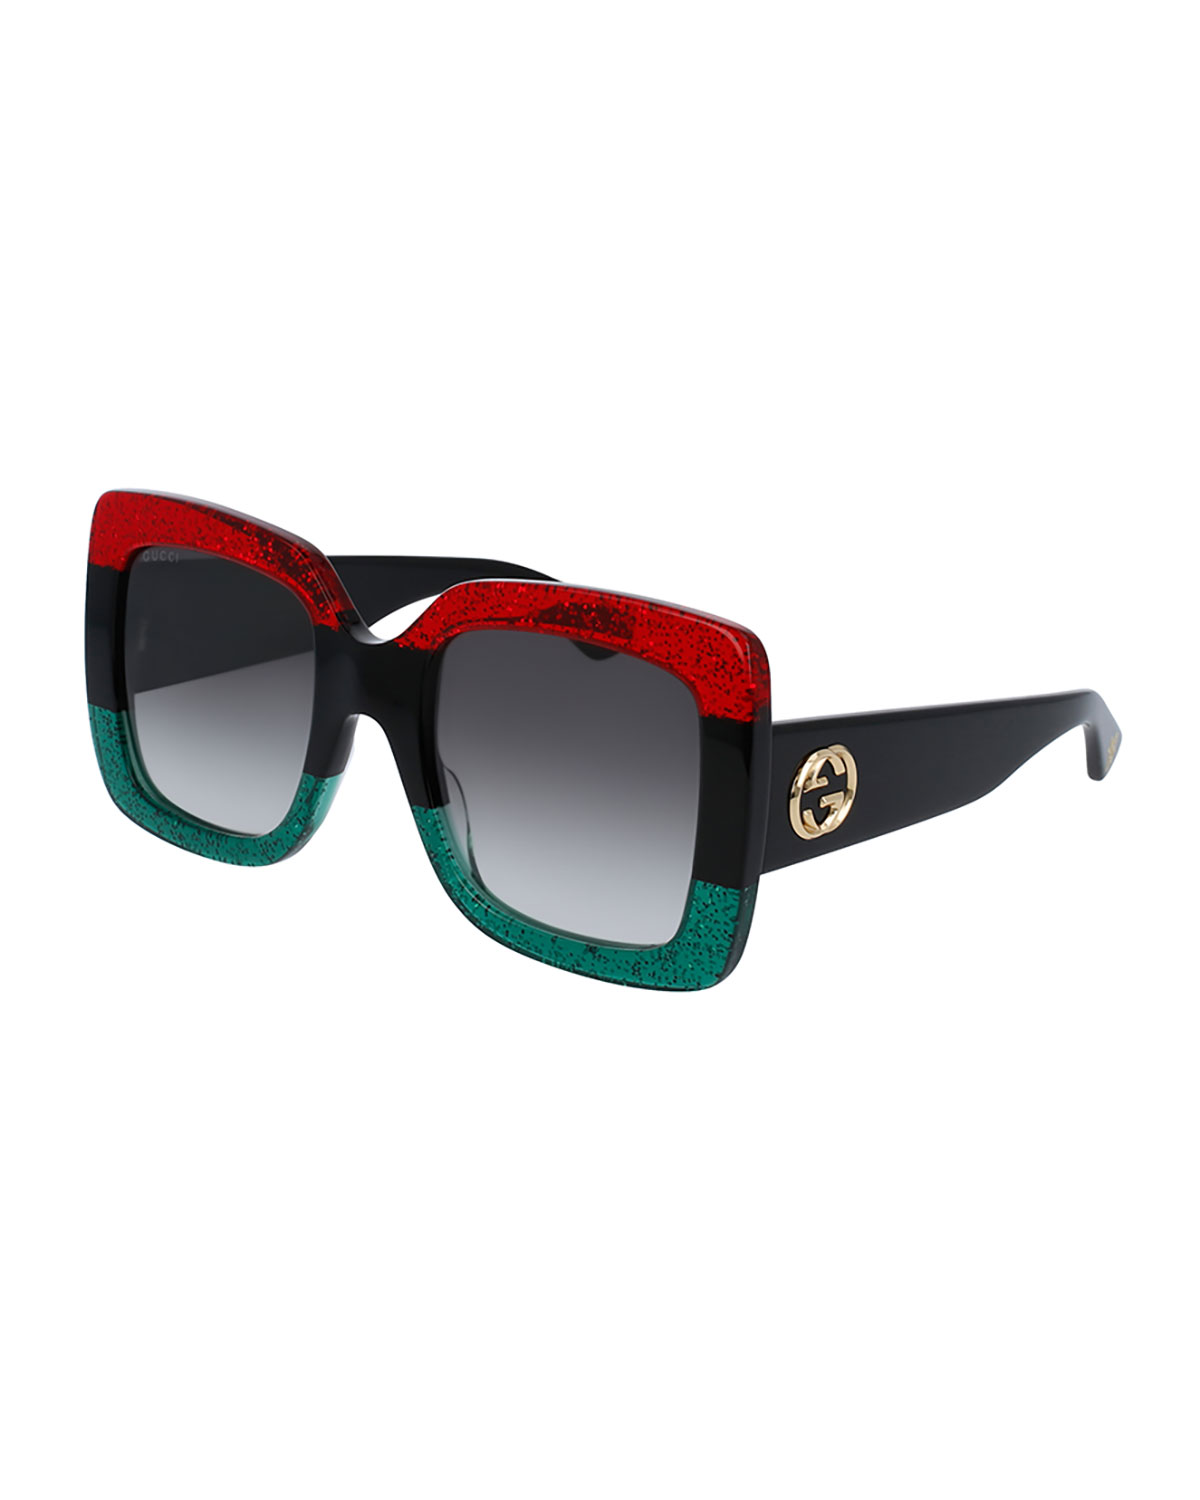 67c78d3360a Gucci Glittered Gradient Oversized Square Sunglasses